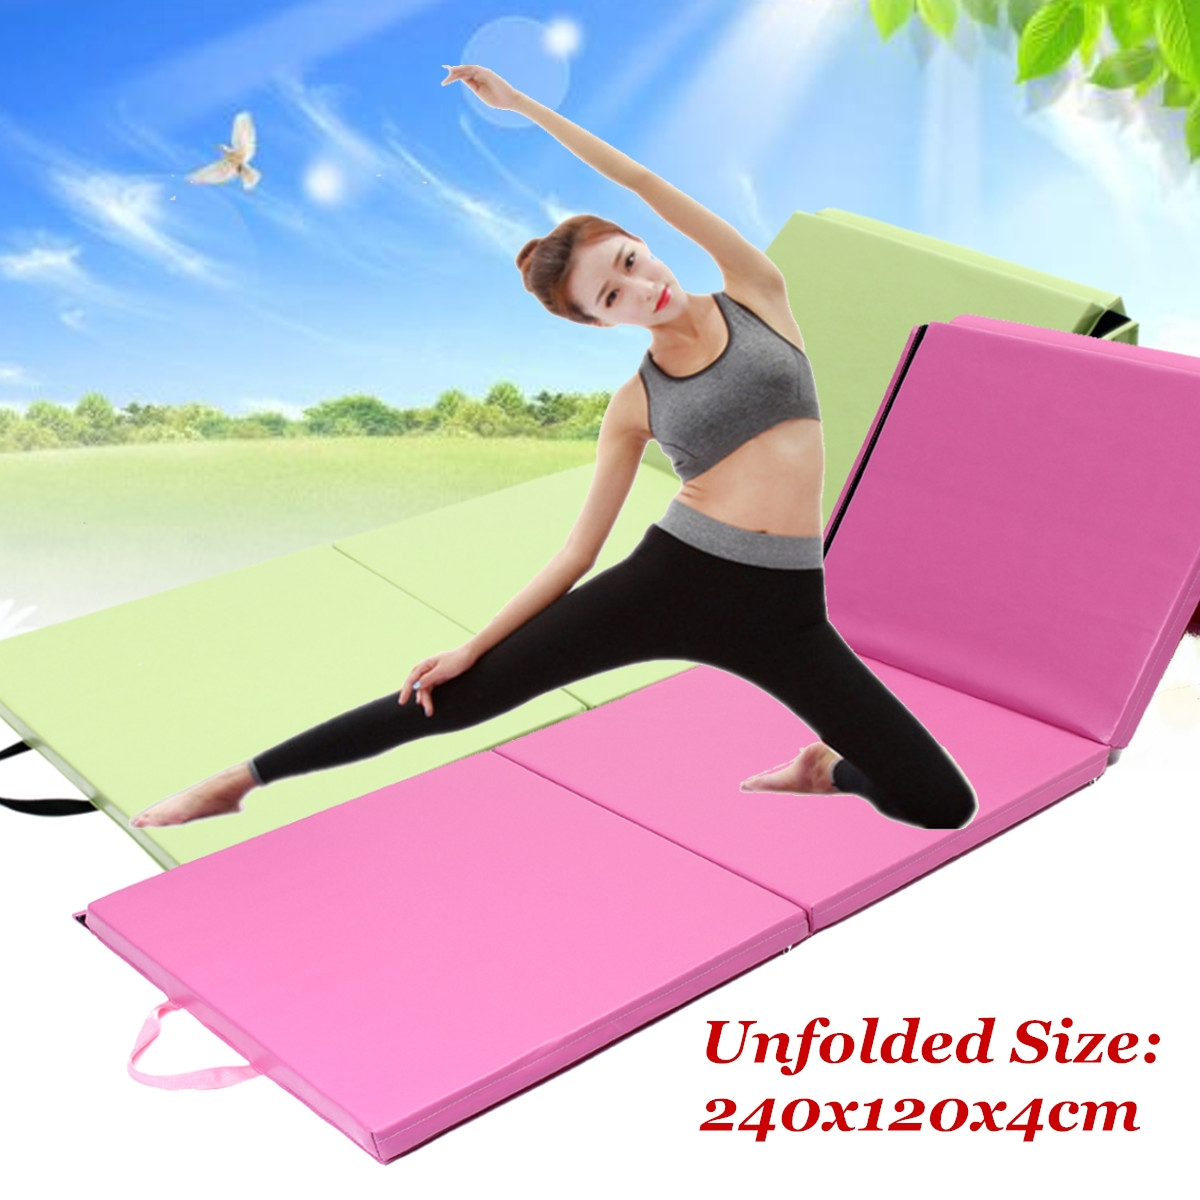 240x120cm PU Leather Foldable Gym Mat Yoga Tumbling Floor Sport Training Pad Exercise Fitness Cushion Gymnastics Accessories